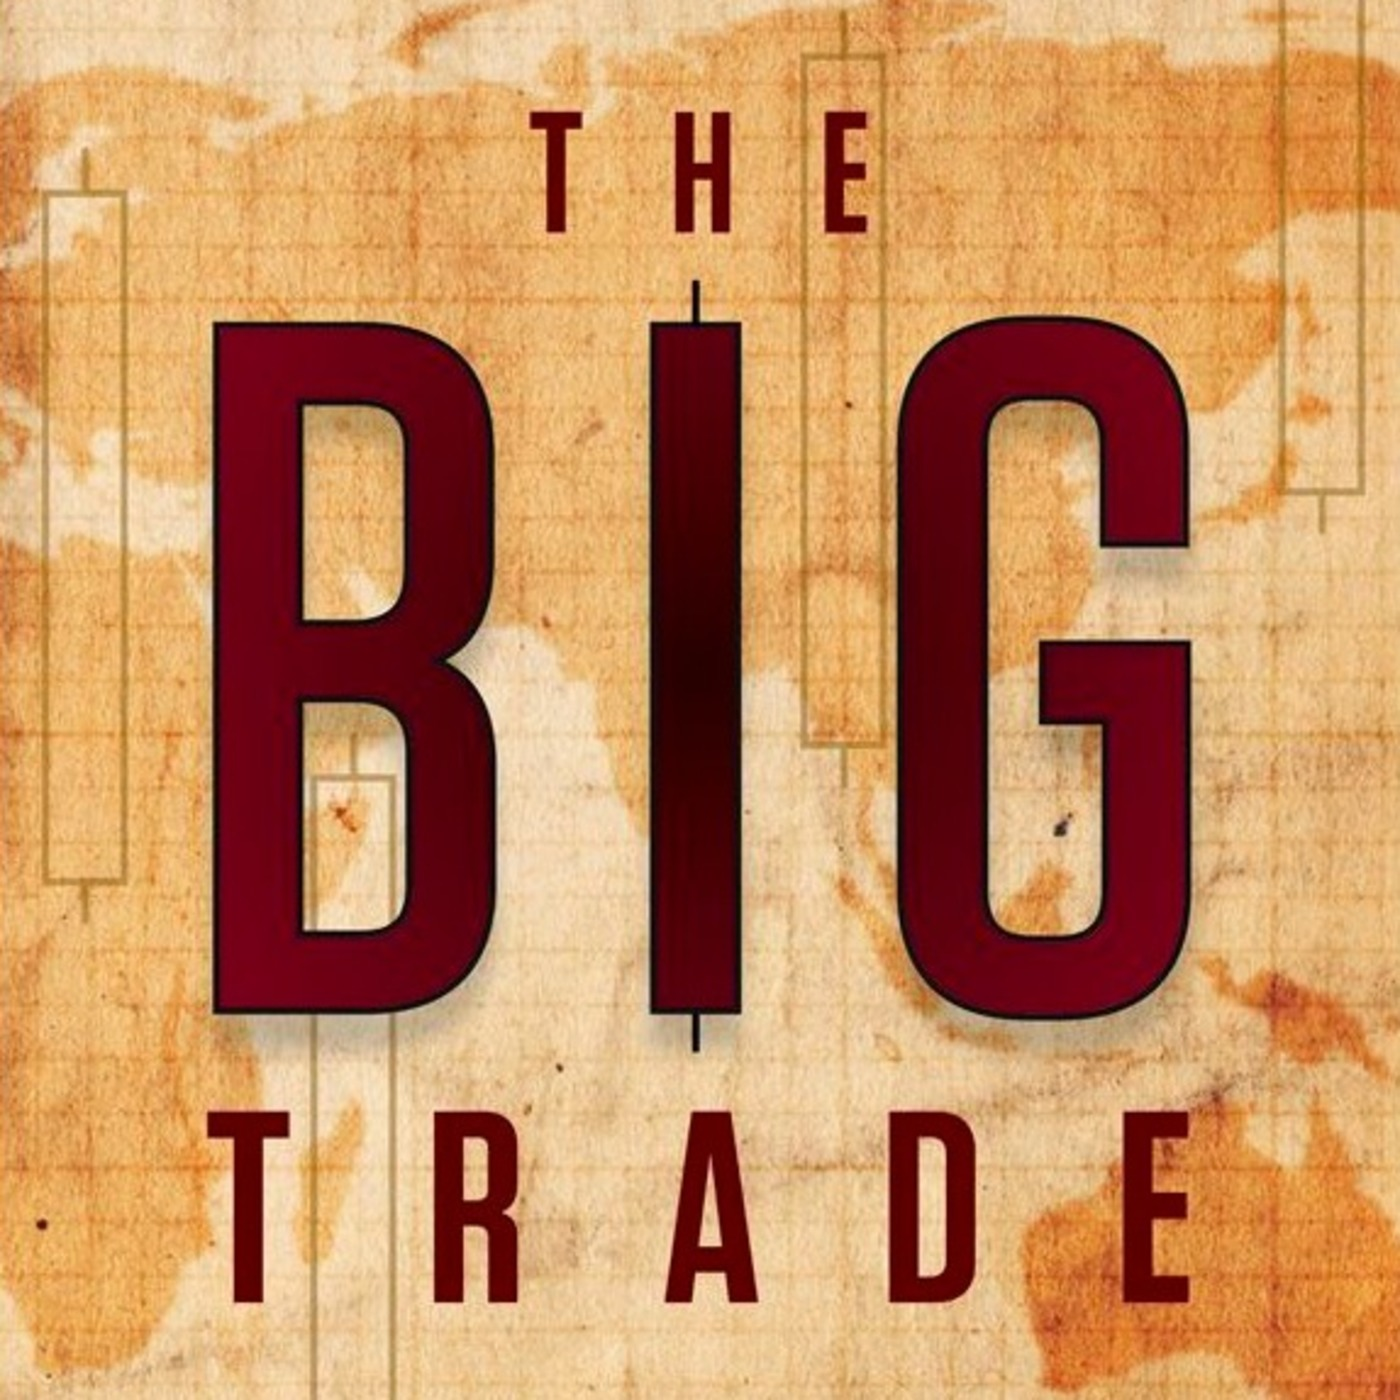 The Big Trade Series